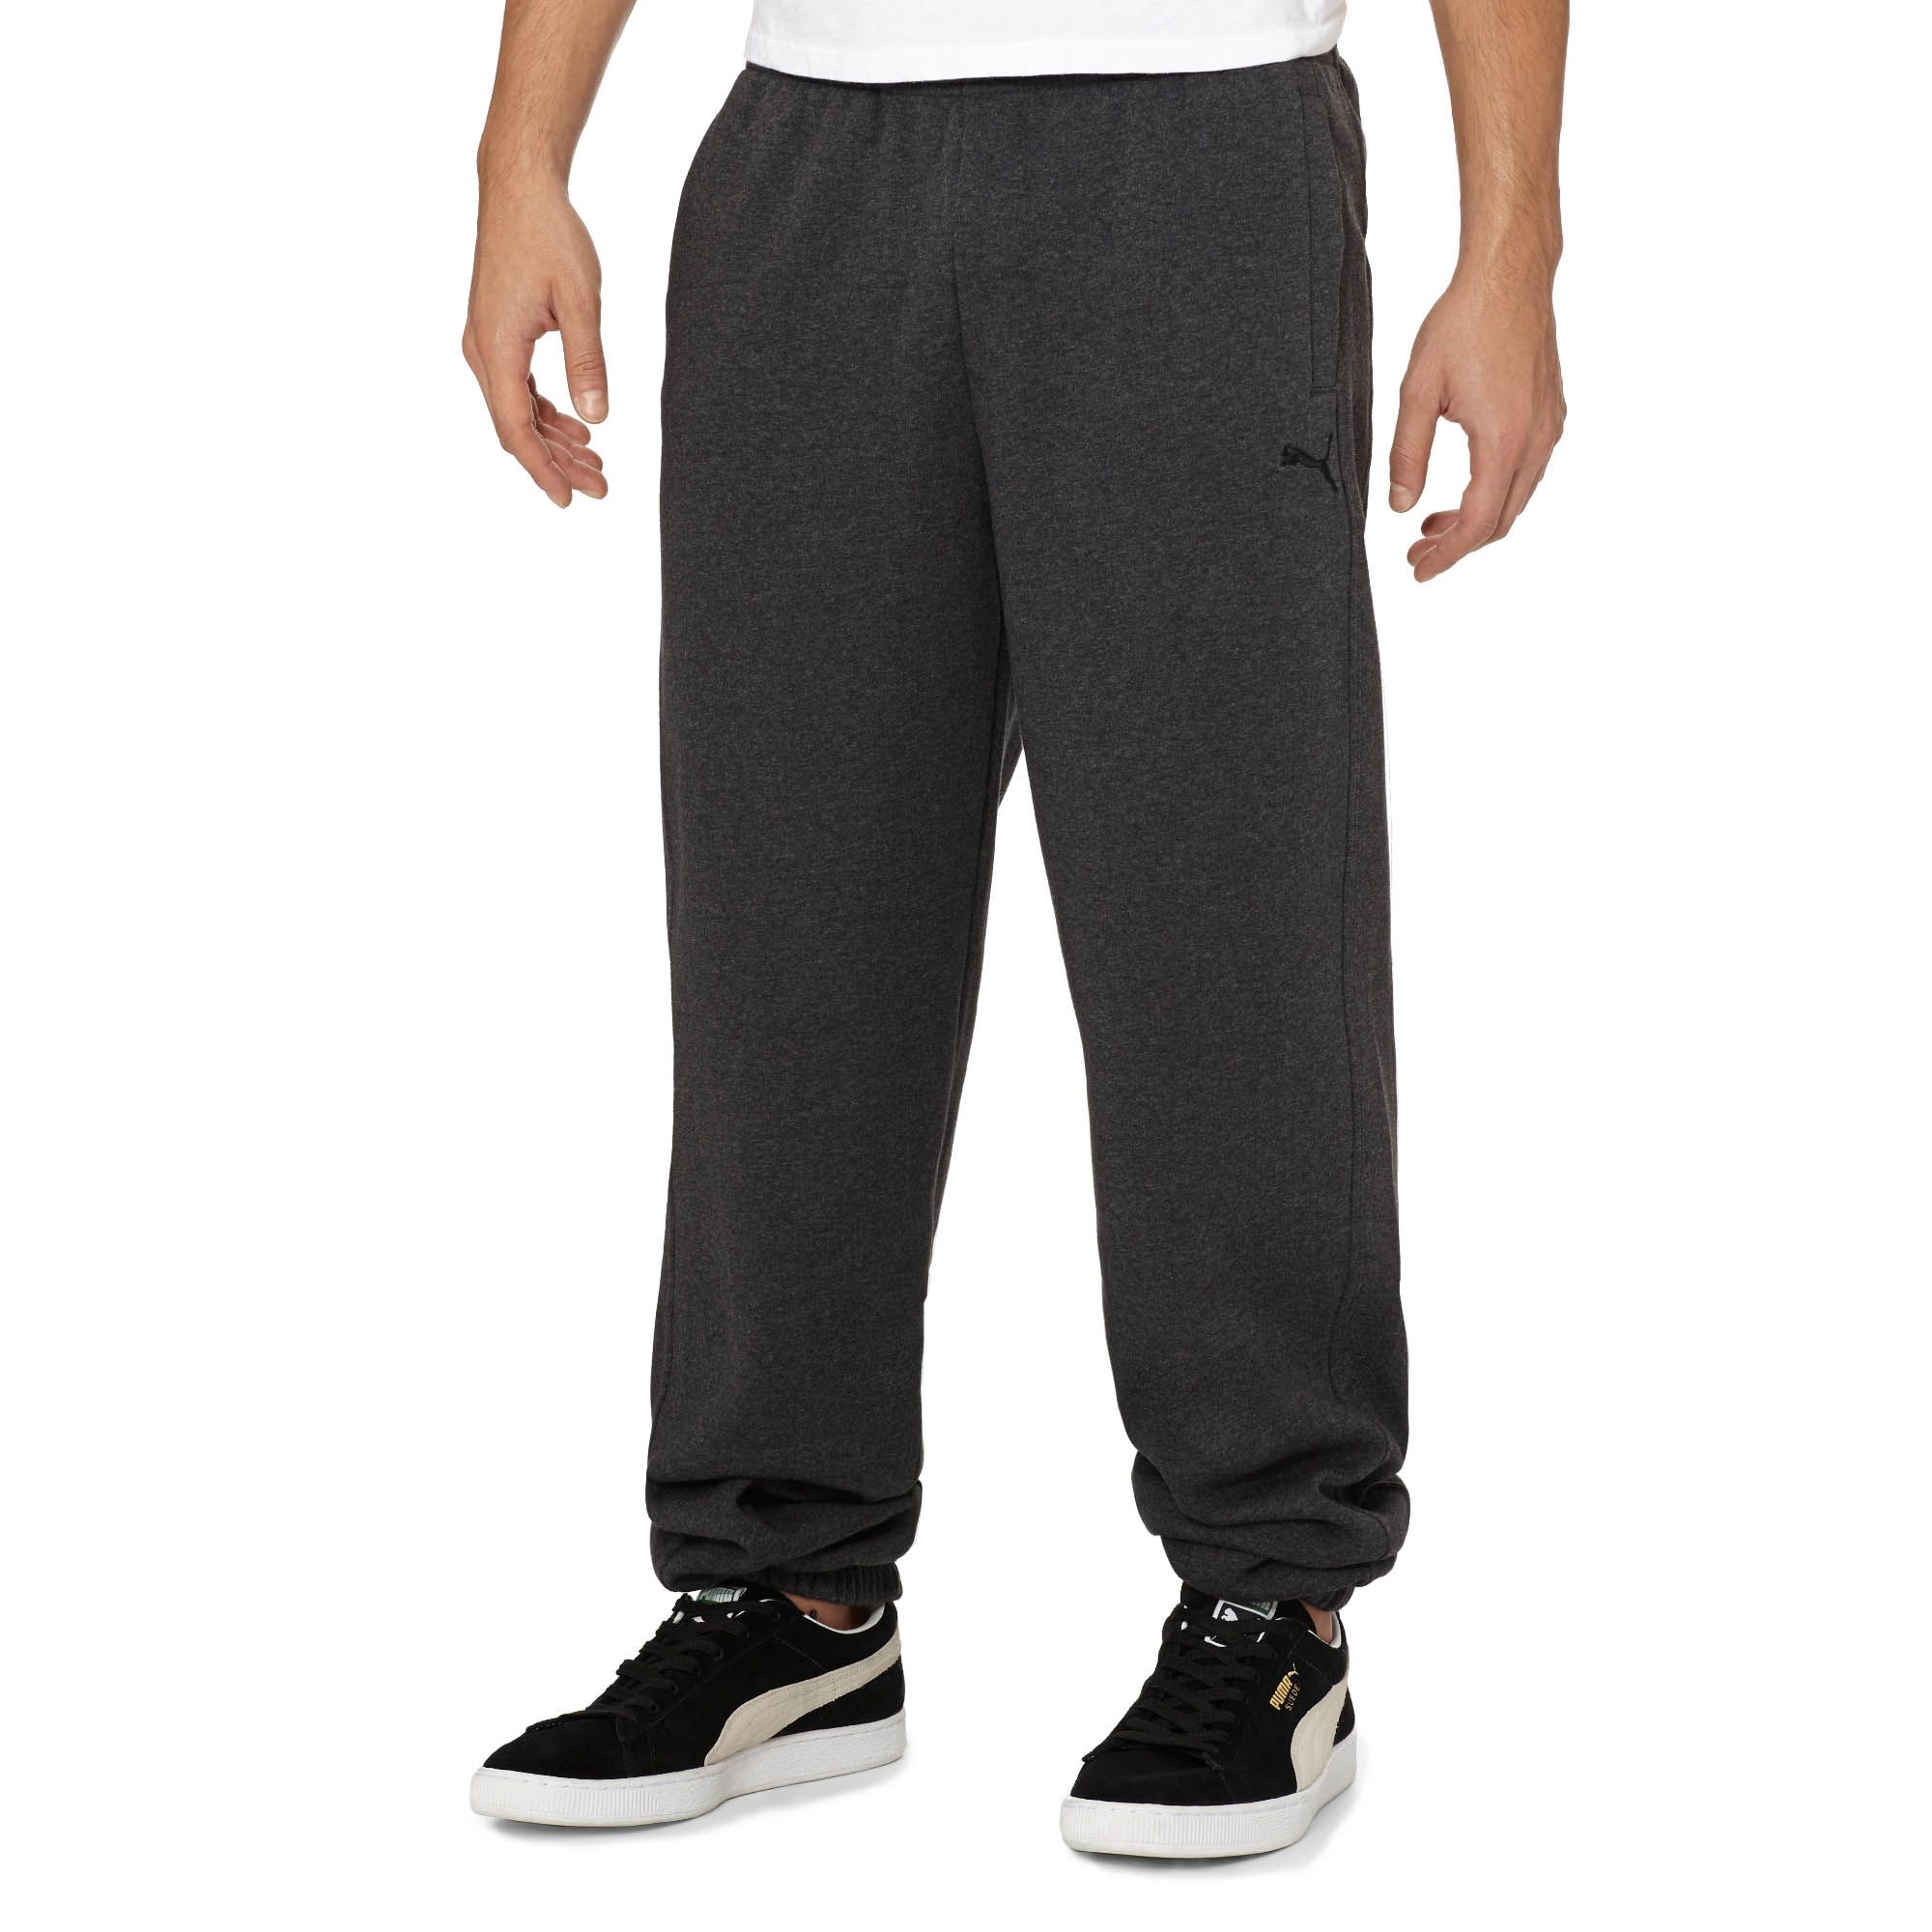 M closed sweat pant